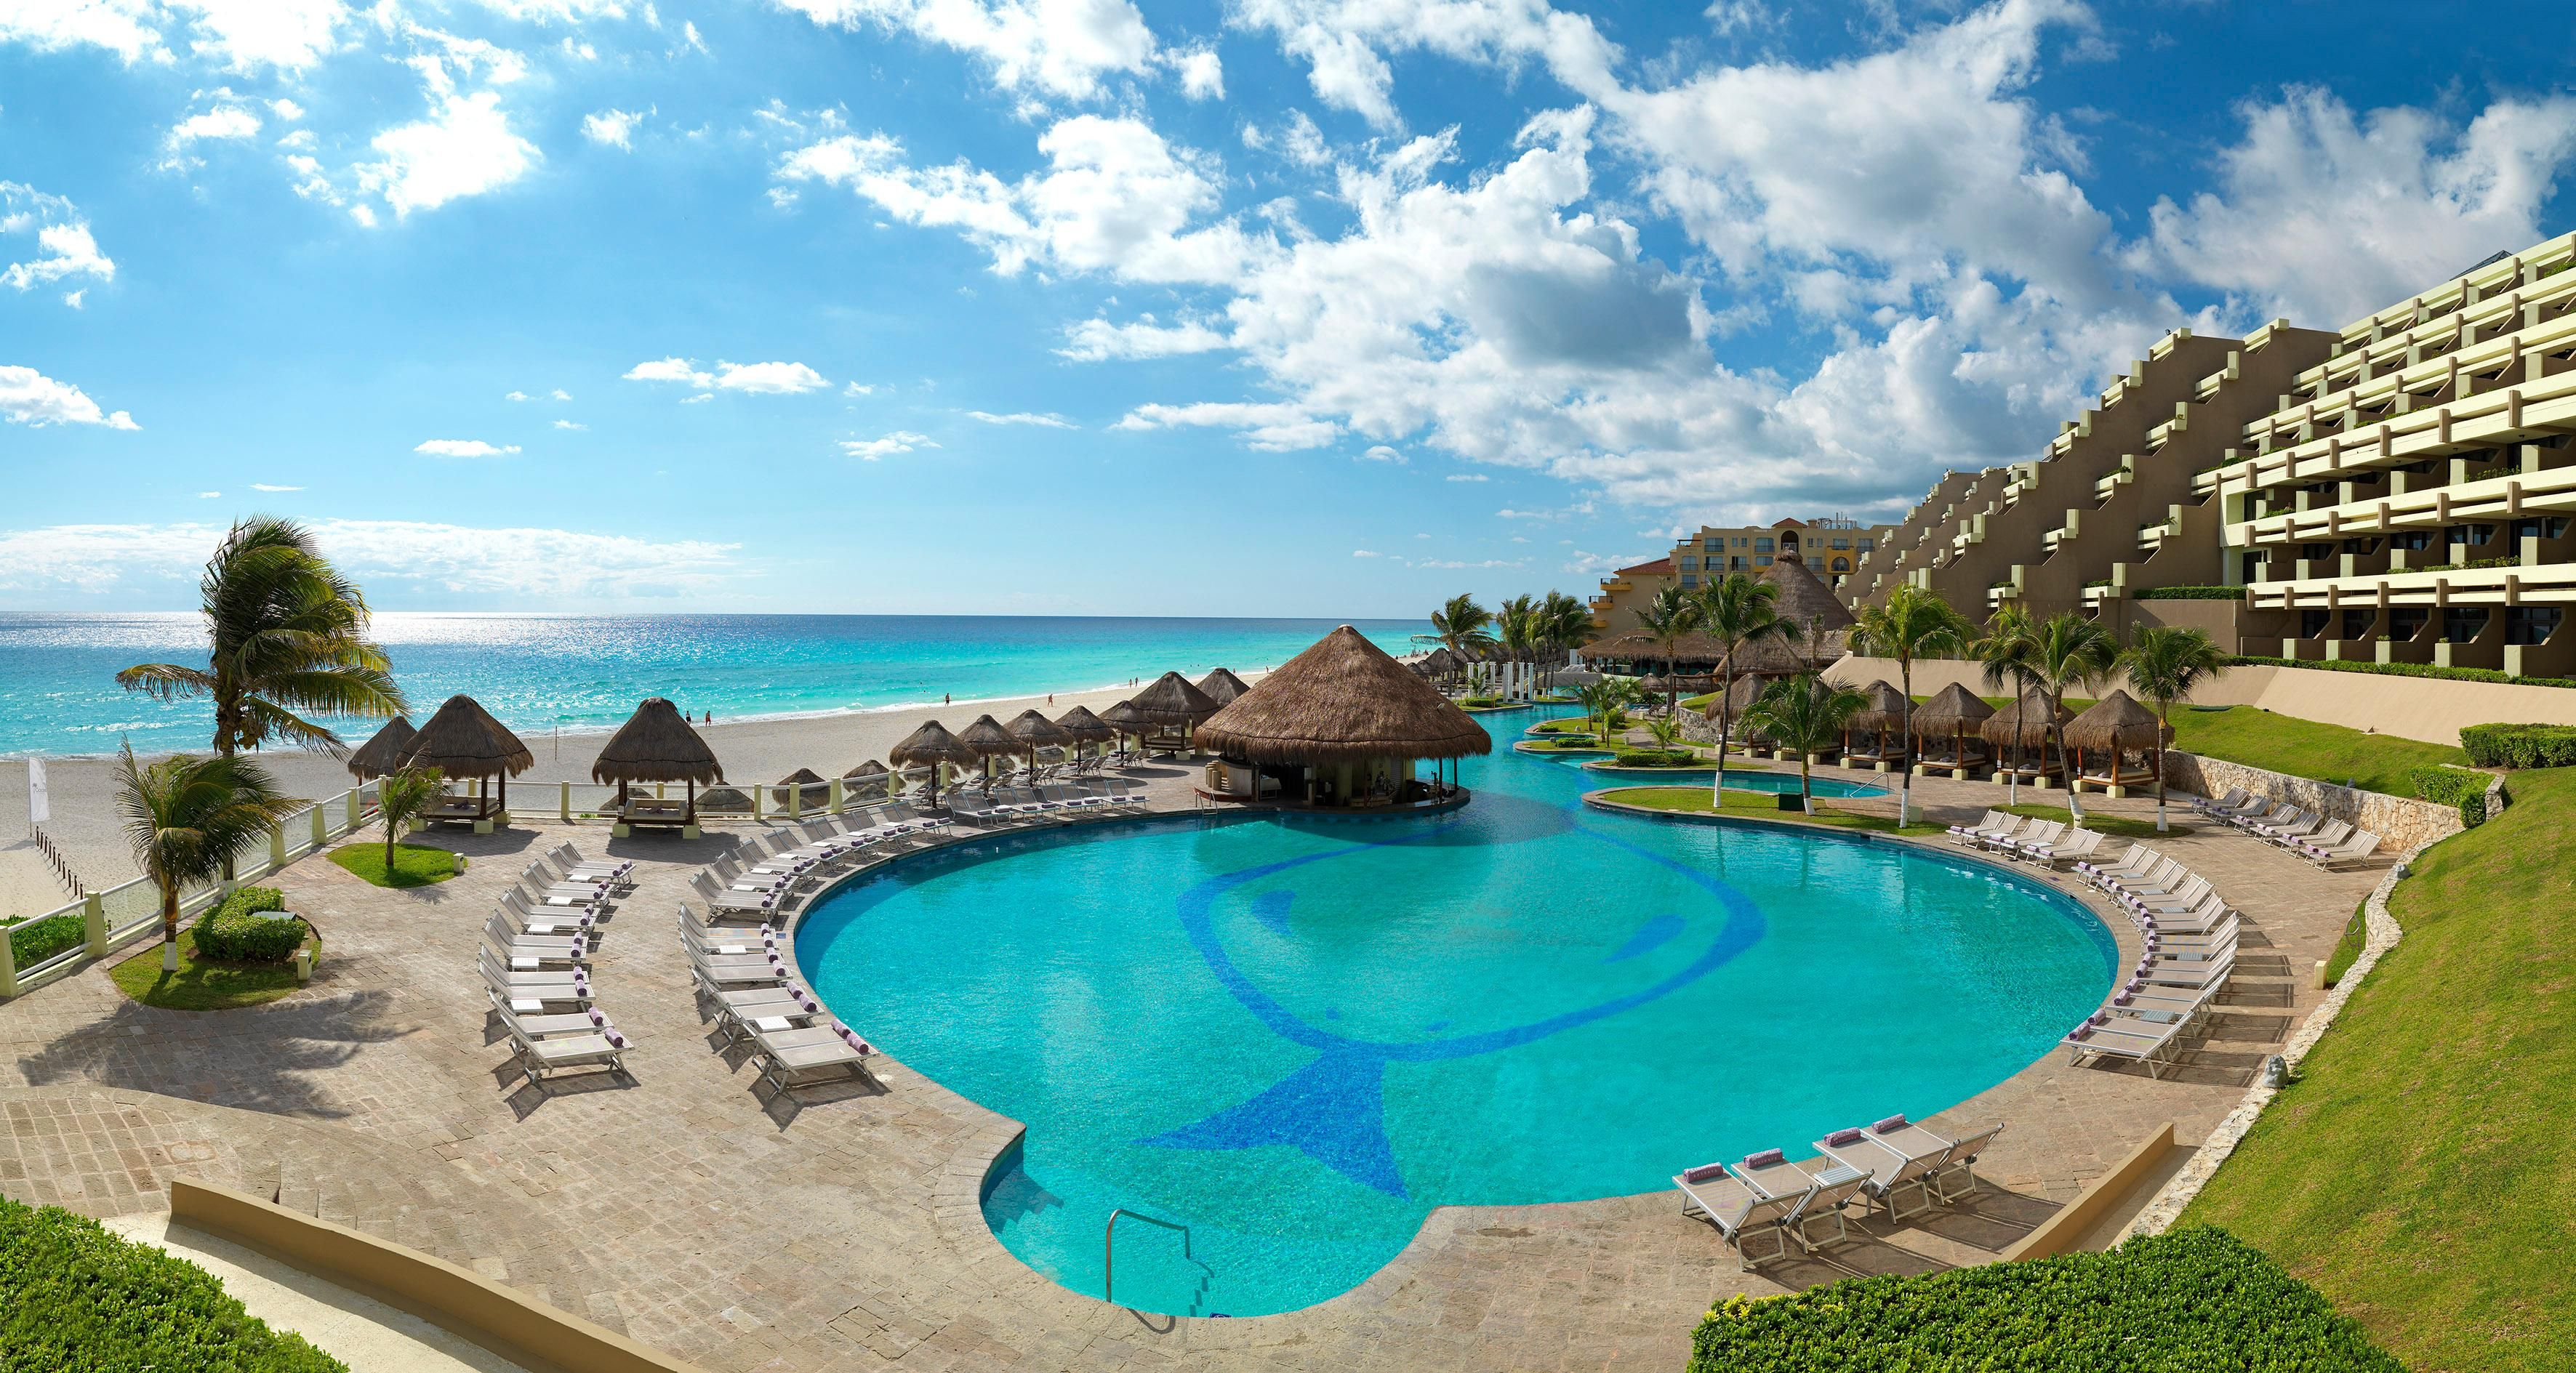 Paradisus Cancun  All inclusive honeymoon All inclusive